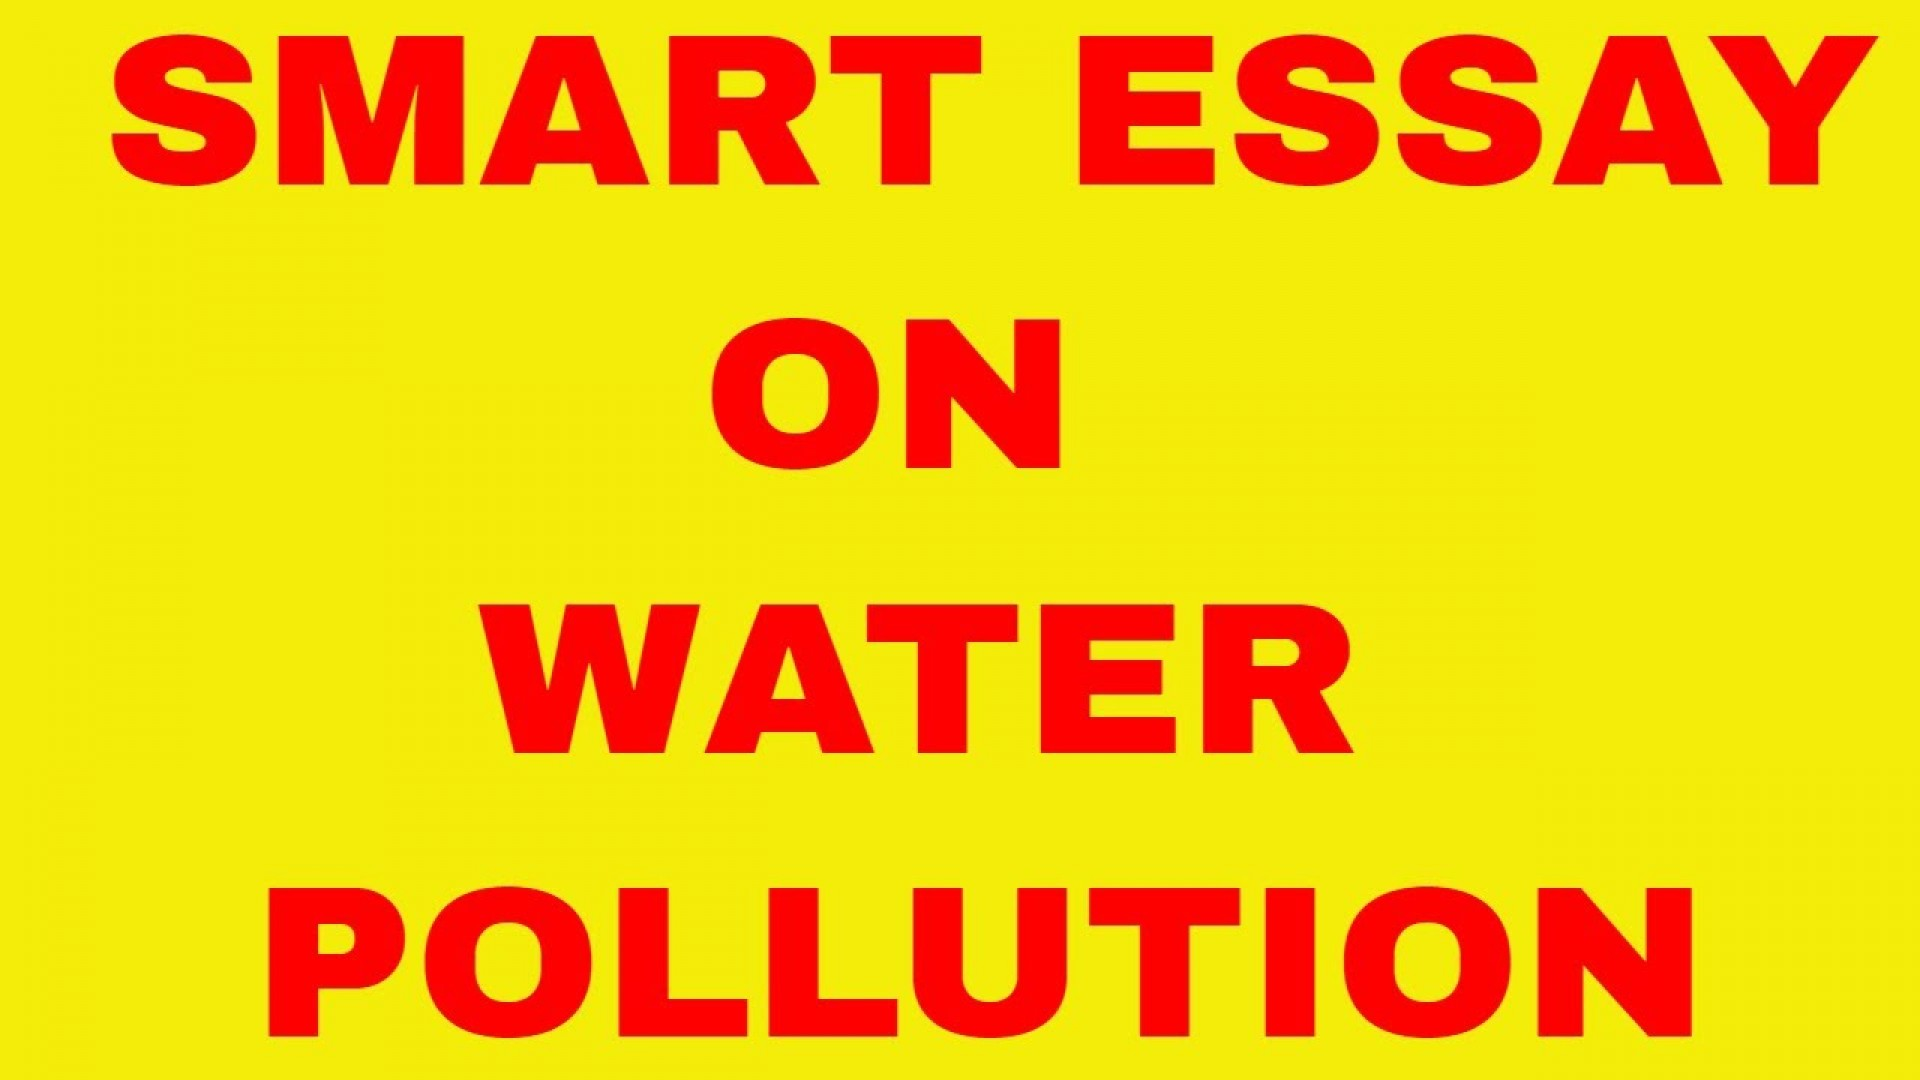 002 Essay Example Water Pollution On Watergate Scandal In